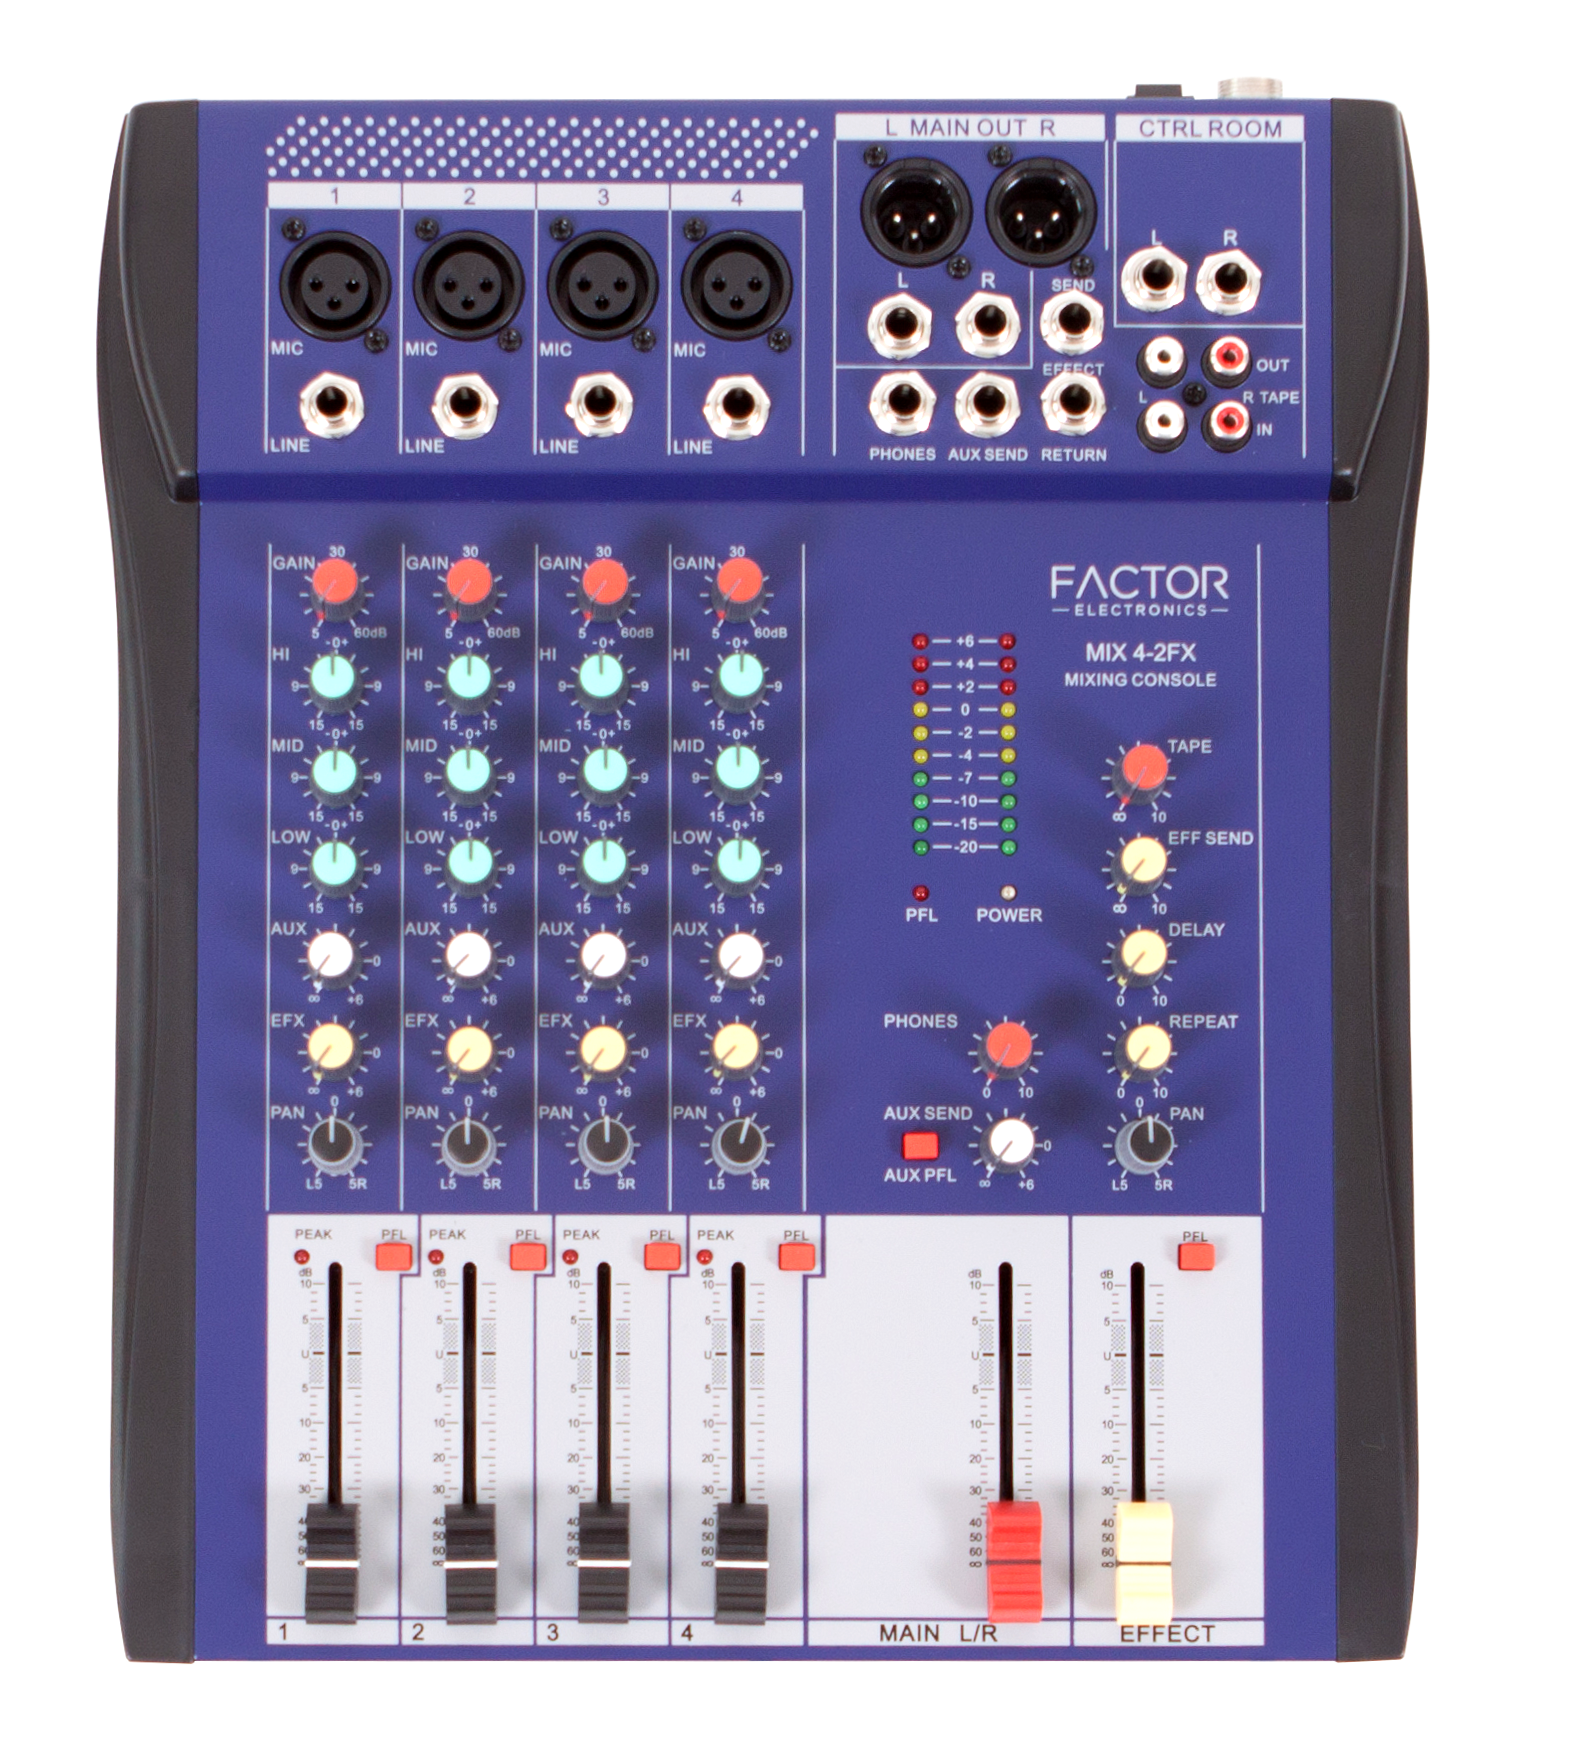 2 Factor Electronics Ultra Low Noise Microphone Compact Mixer Digital Effects With Dedicated Return Fader Four Balanced Line Inputs